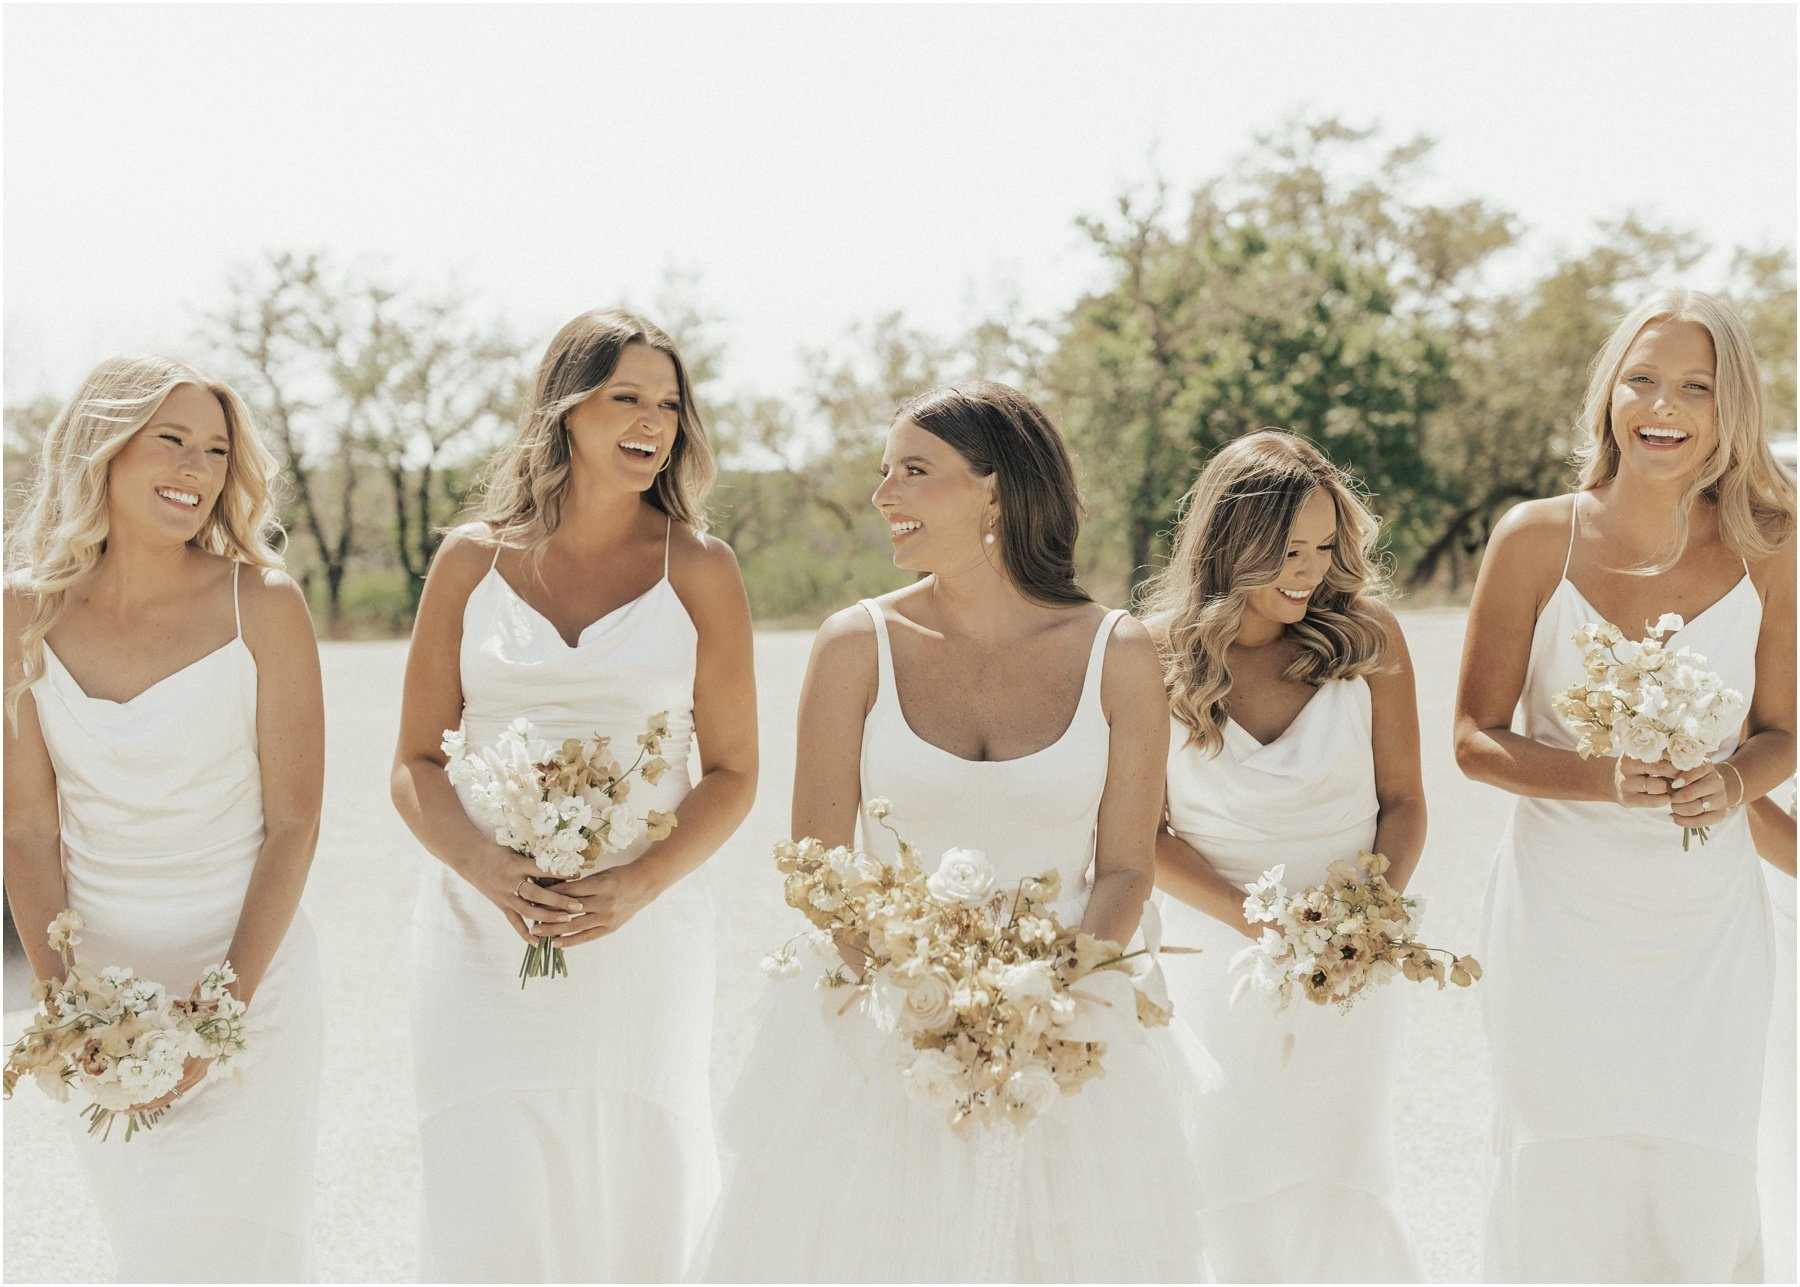 bride and bridesmaids holding modern bouquets with white flowers